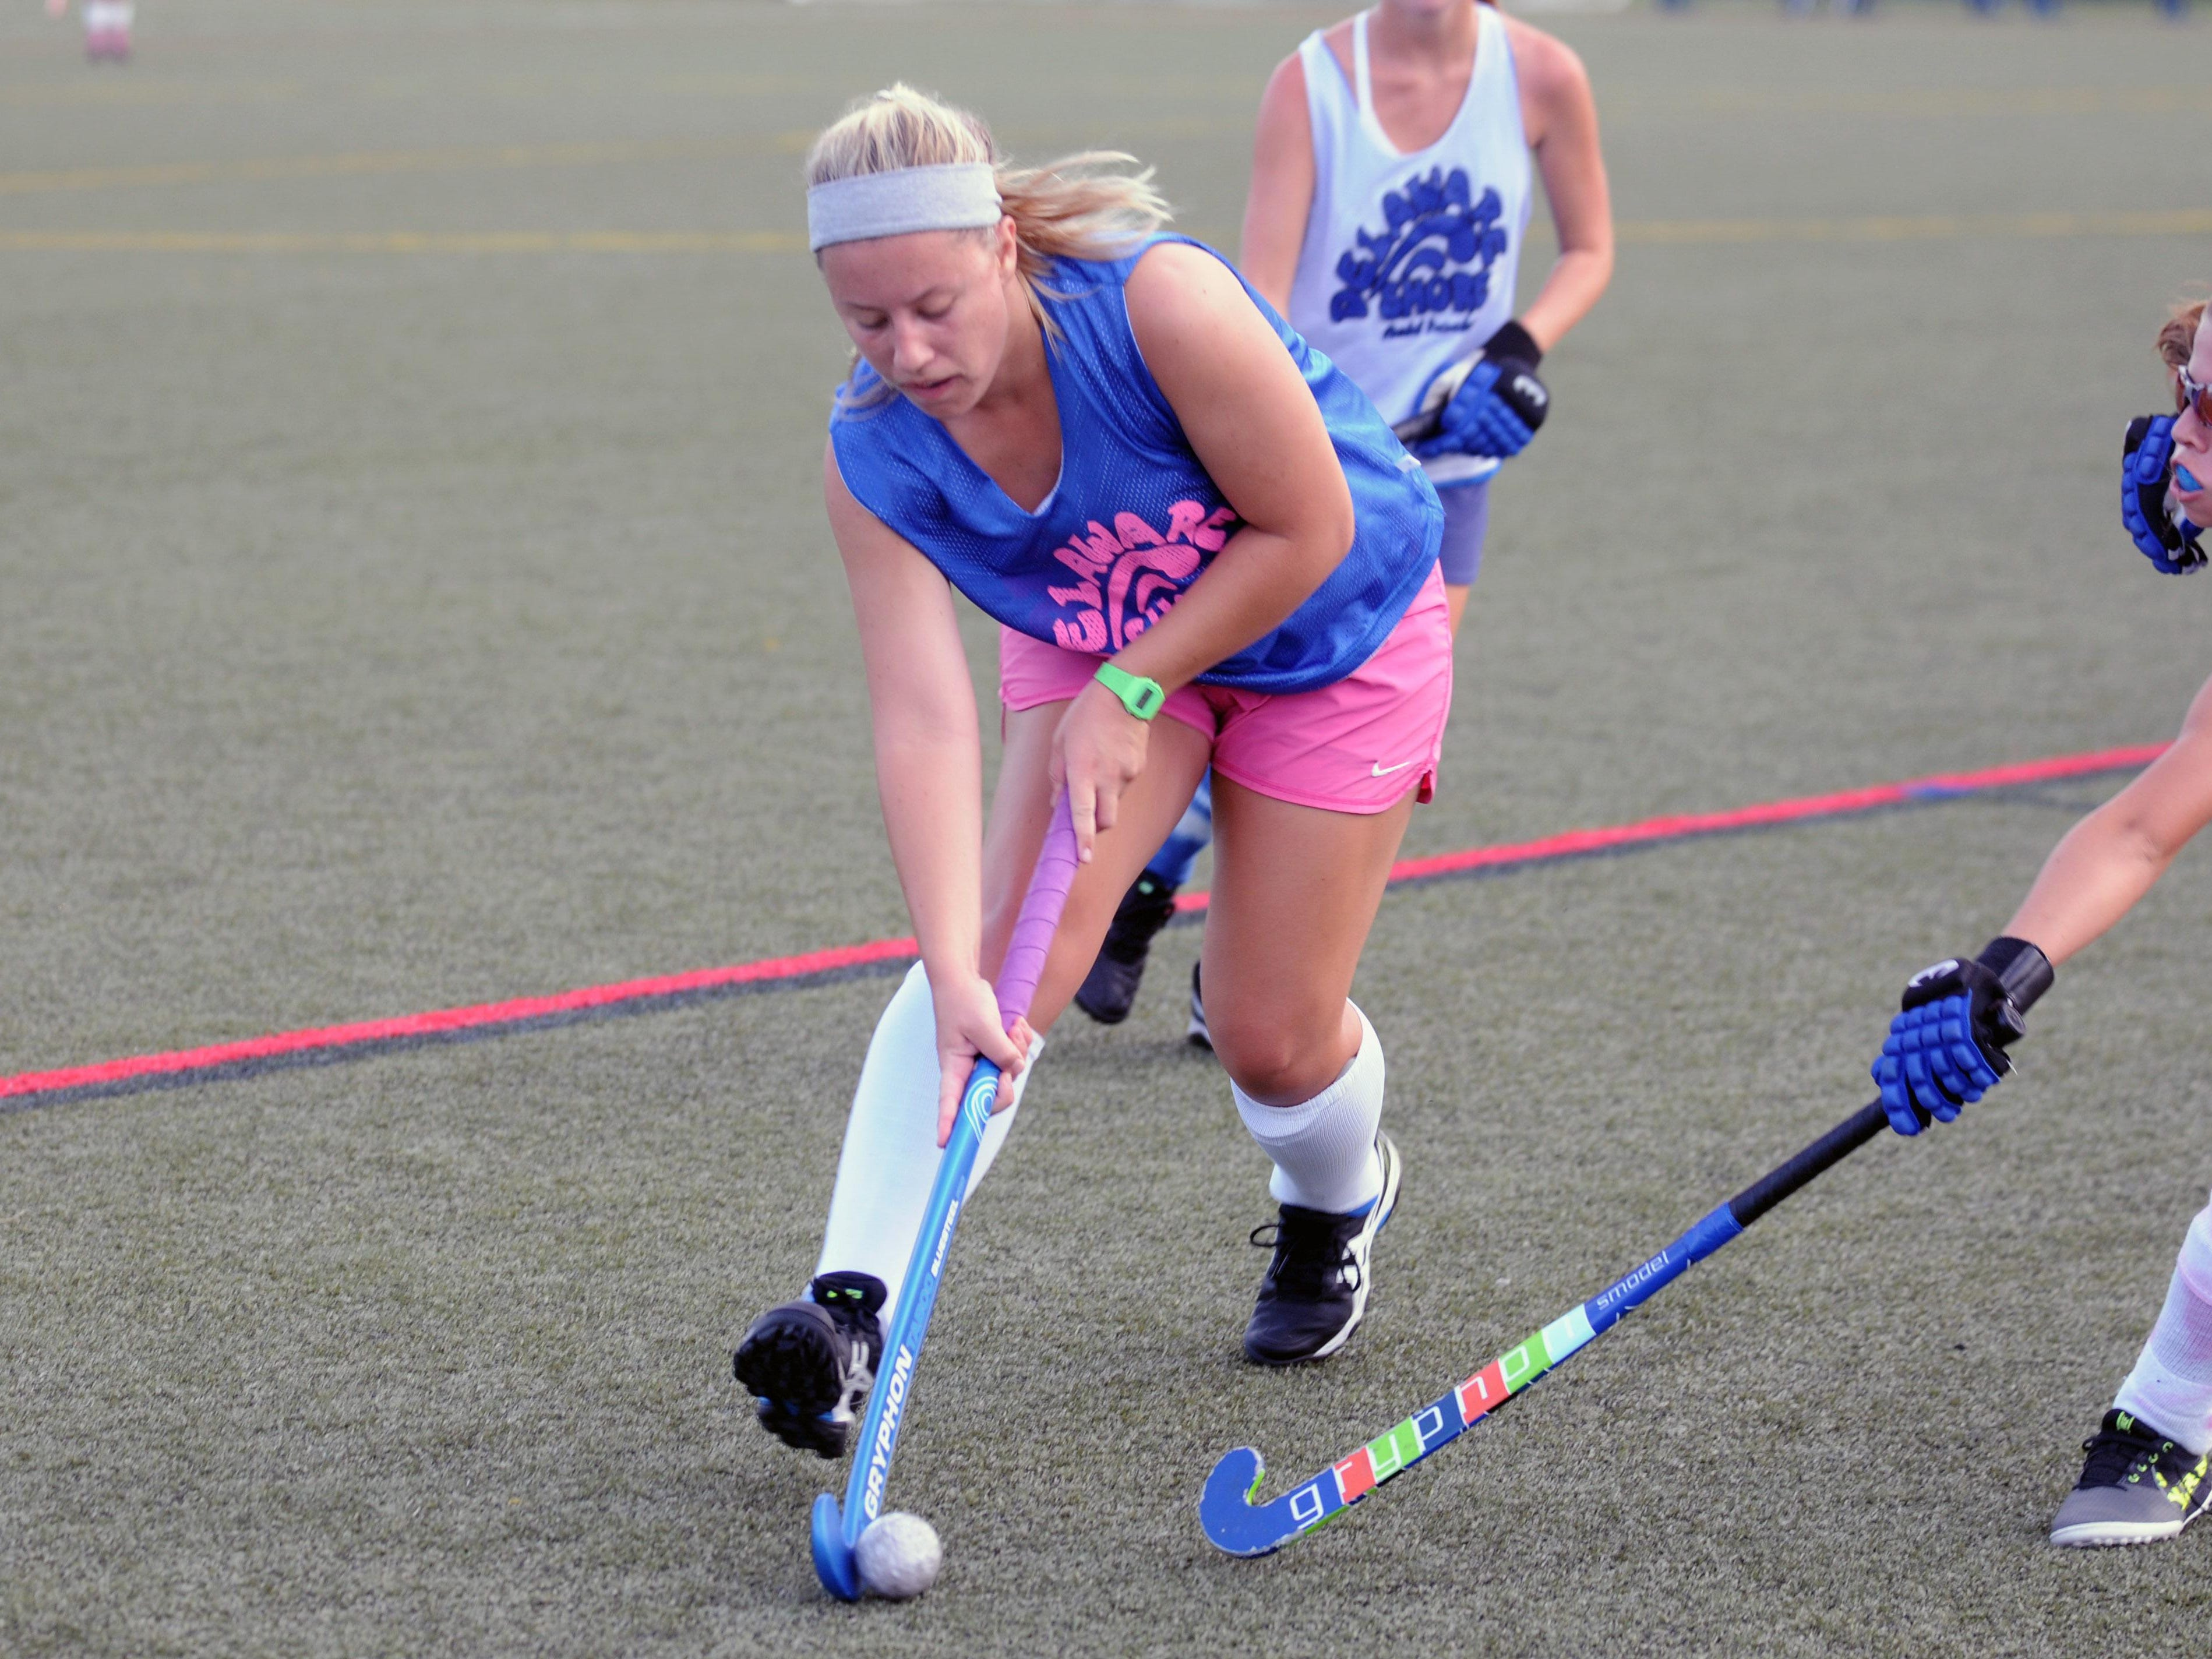 A Delaware Shore Field Hockey player works up the field during a summer league game at Cape Henlopen High School.